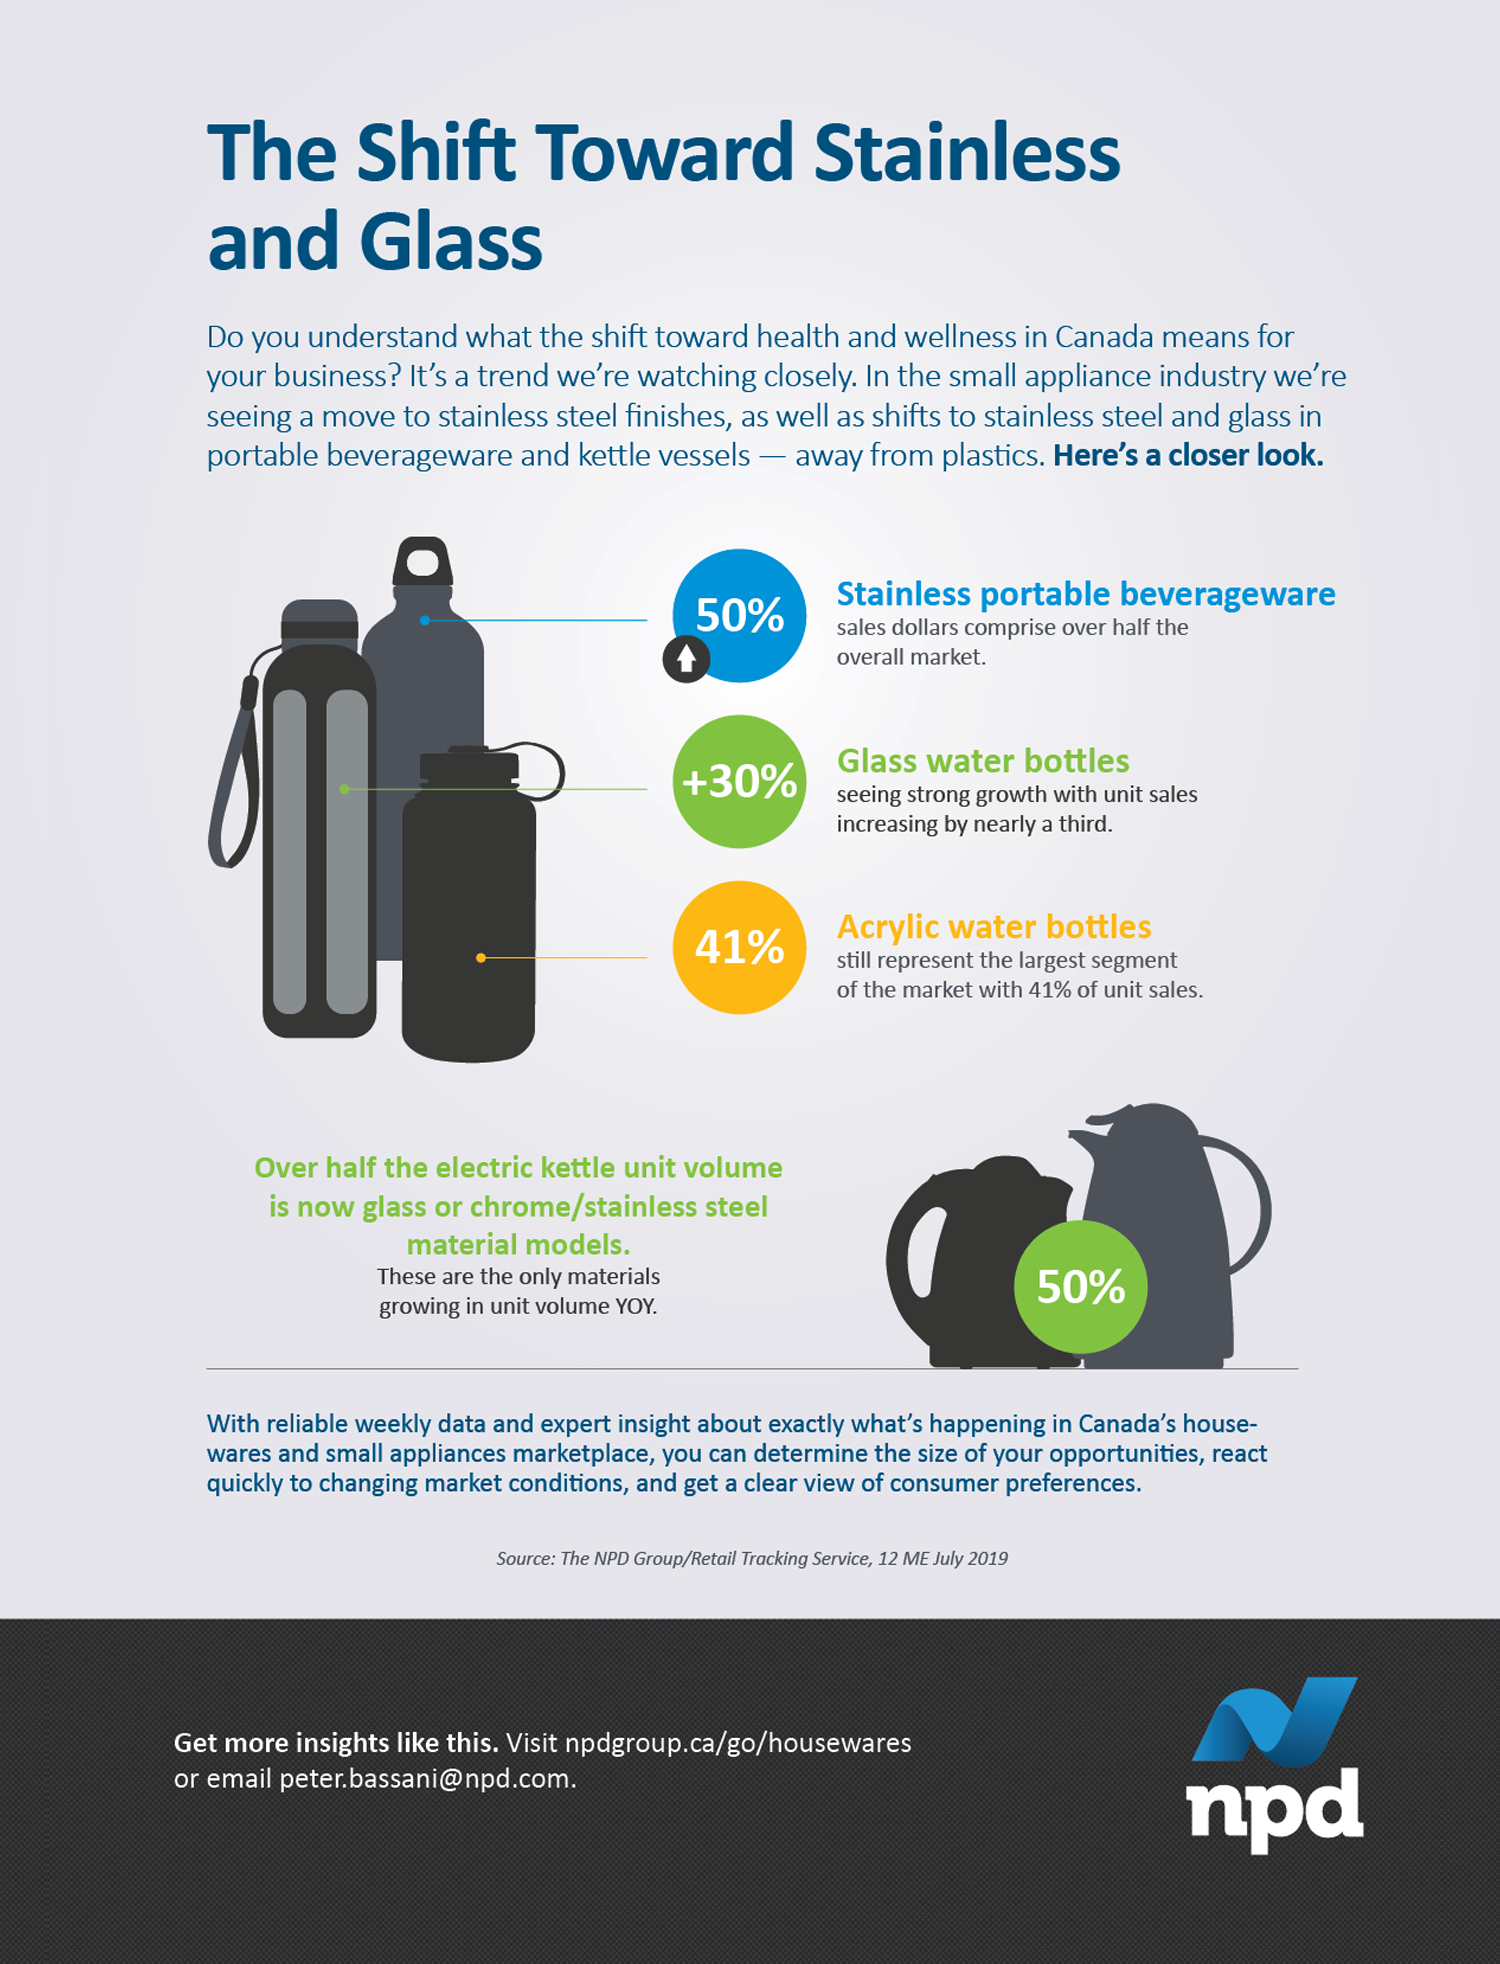 We're seeing a move to stainless steel and glass in portable beverageware and small kitchen appliances – away from plastics. What impact will this trend have on your business?